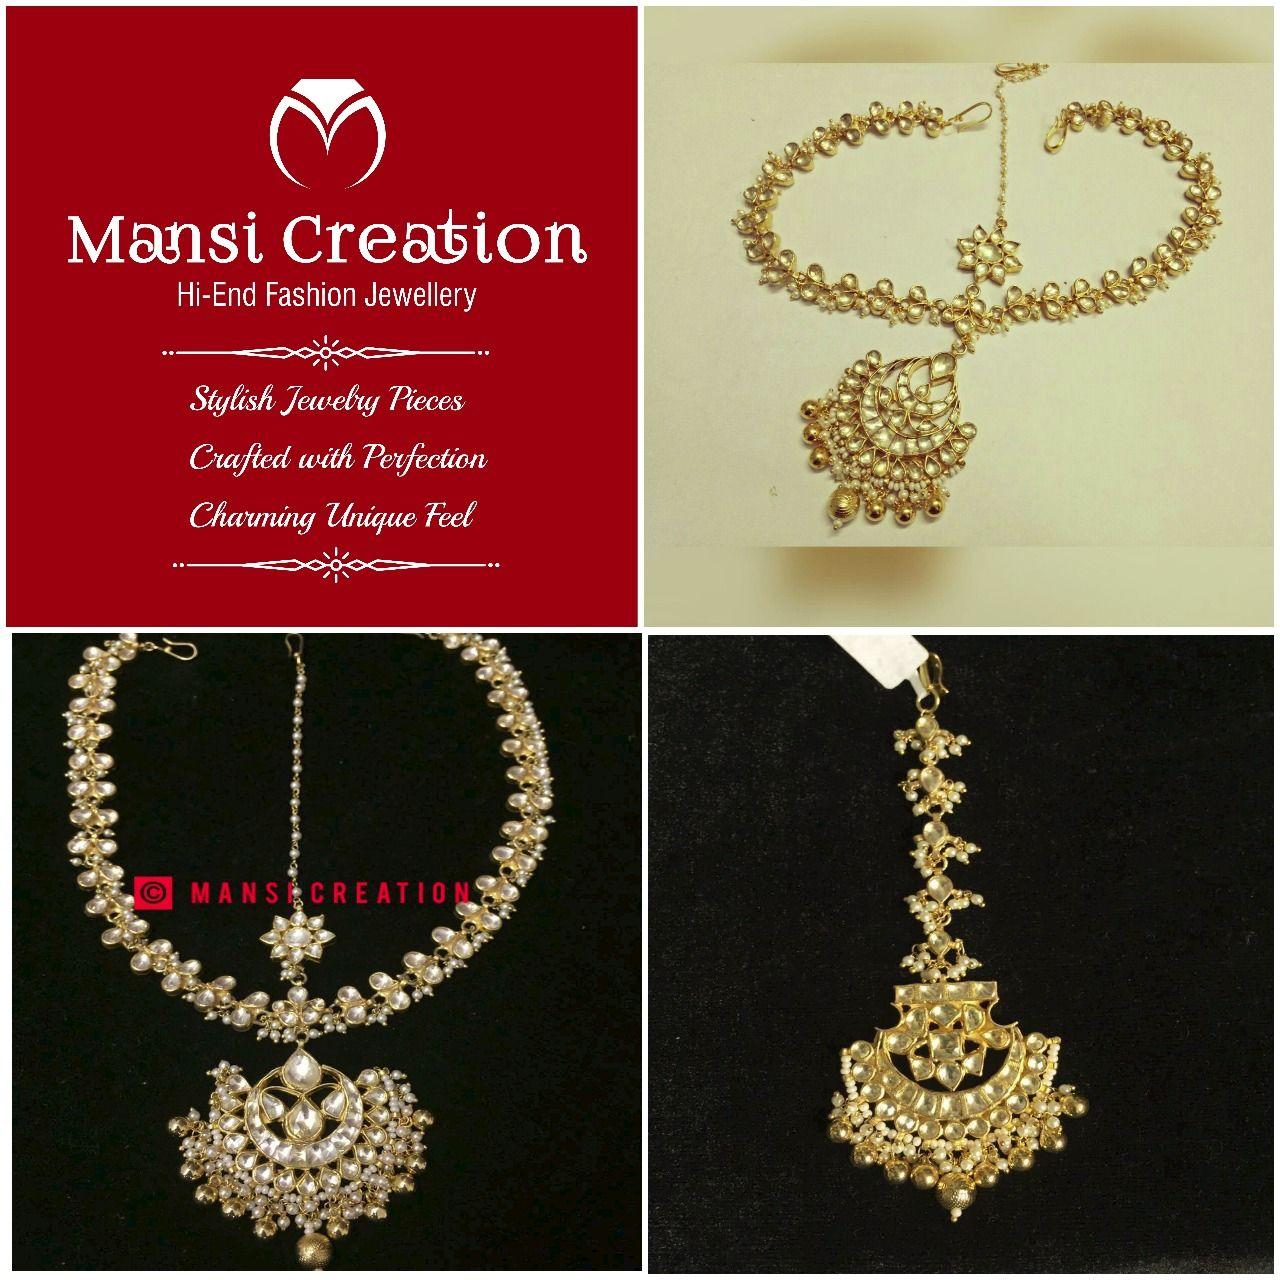 Jewelleries From Mansi Creation Will Steal Your Heart